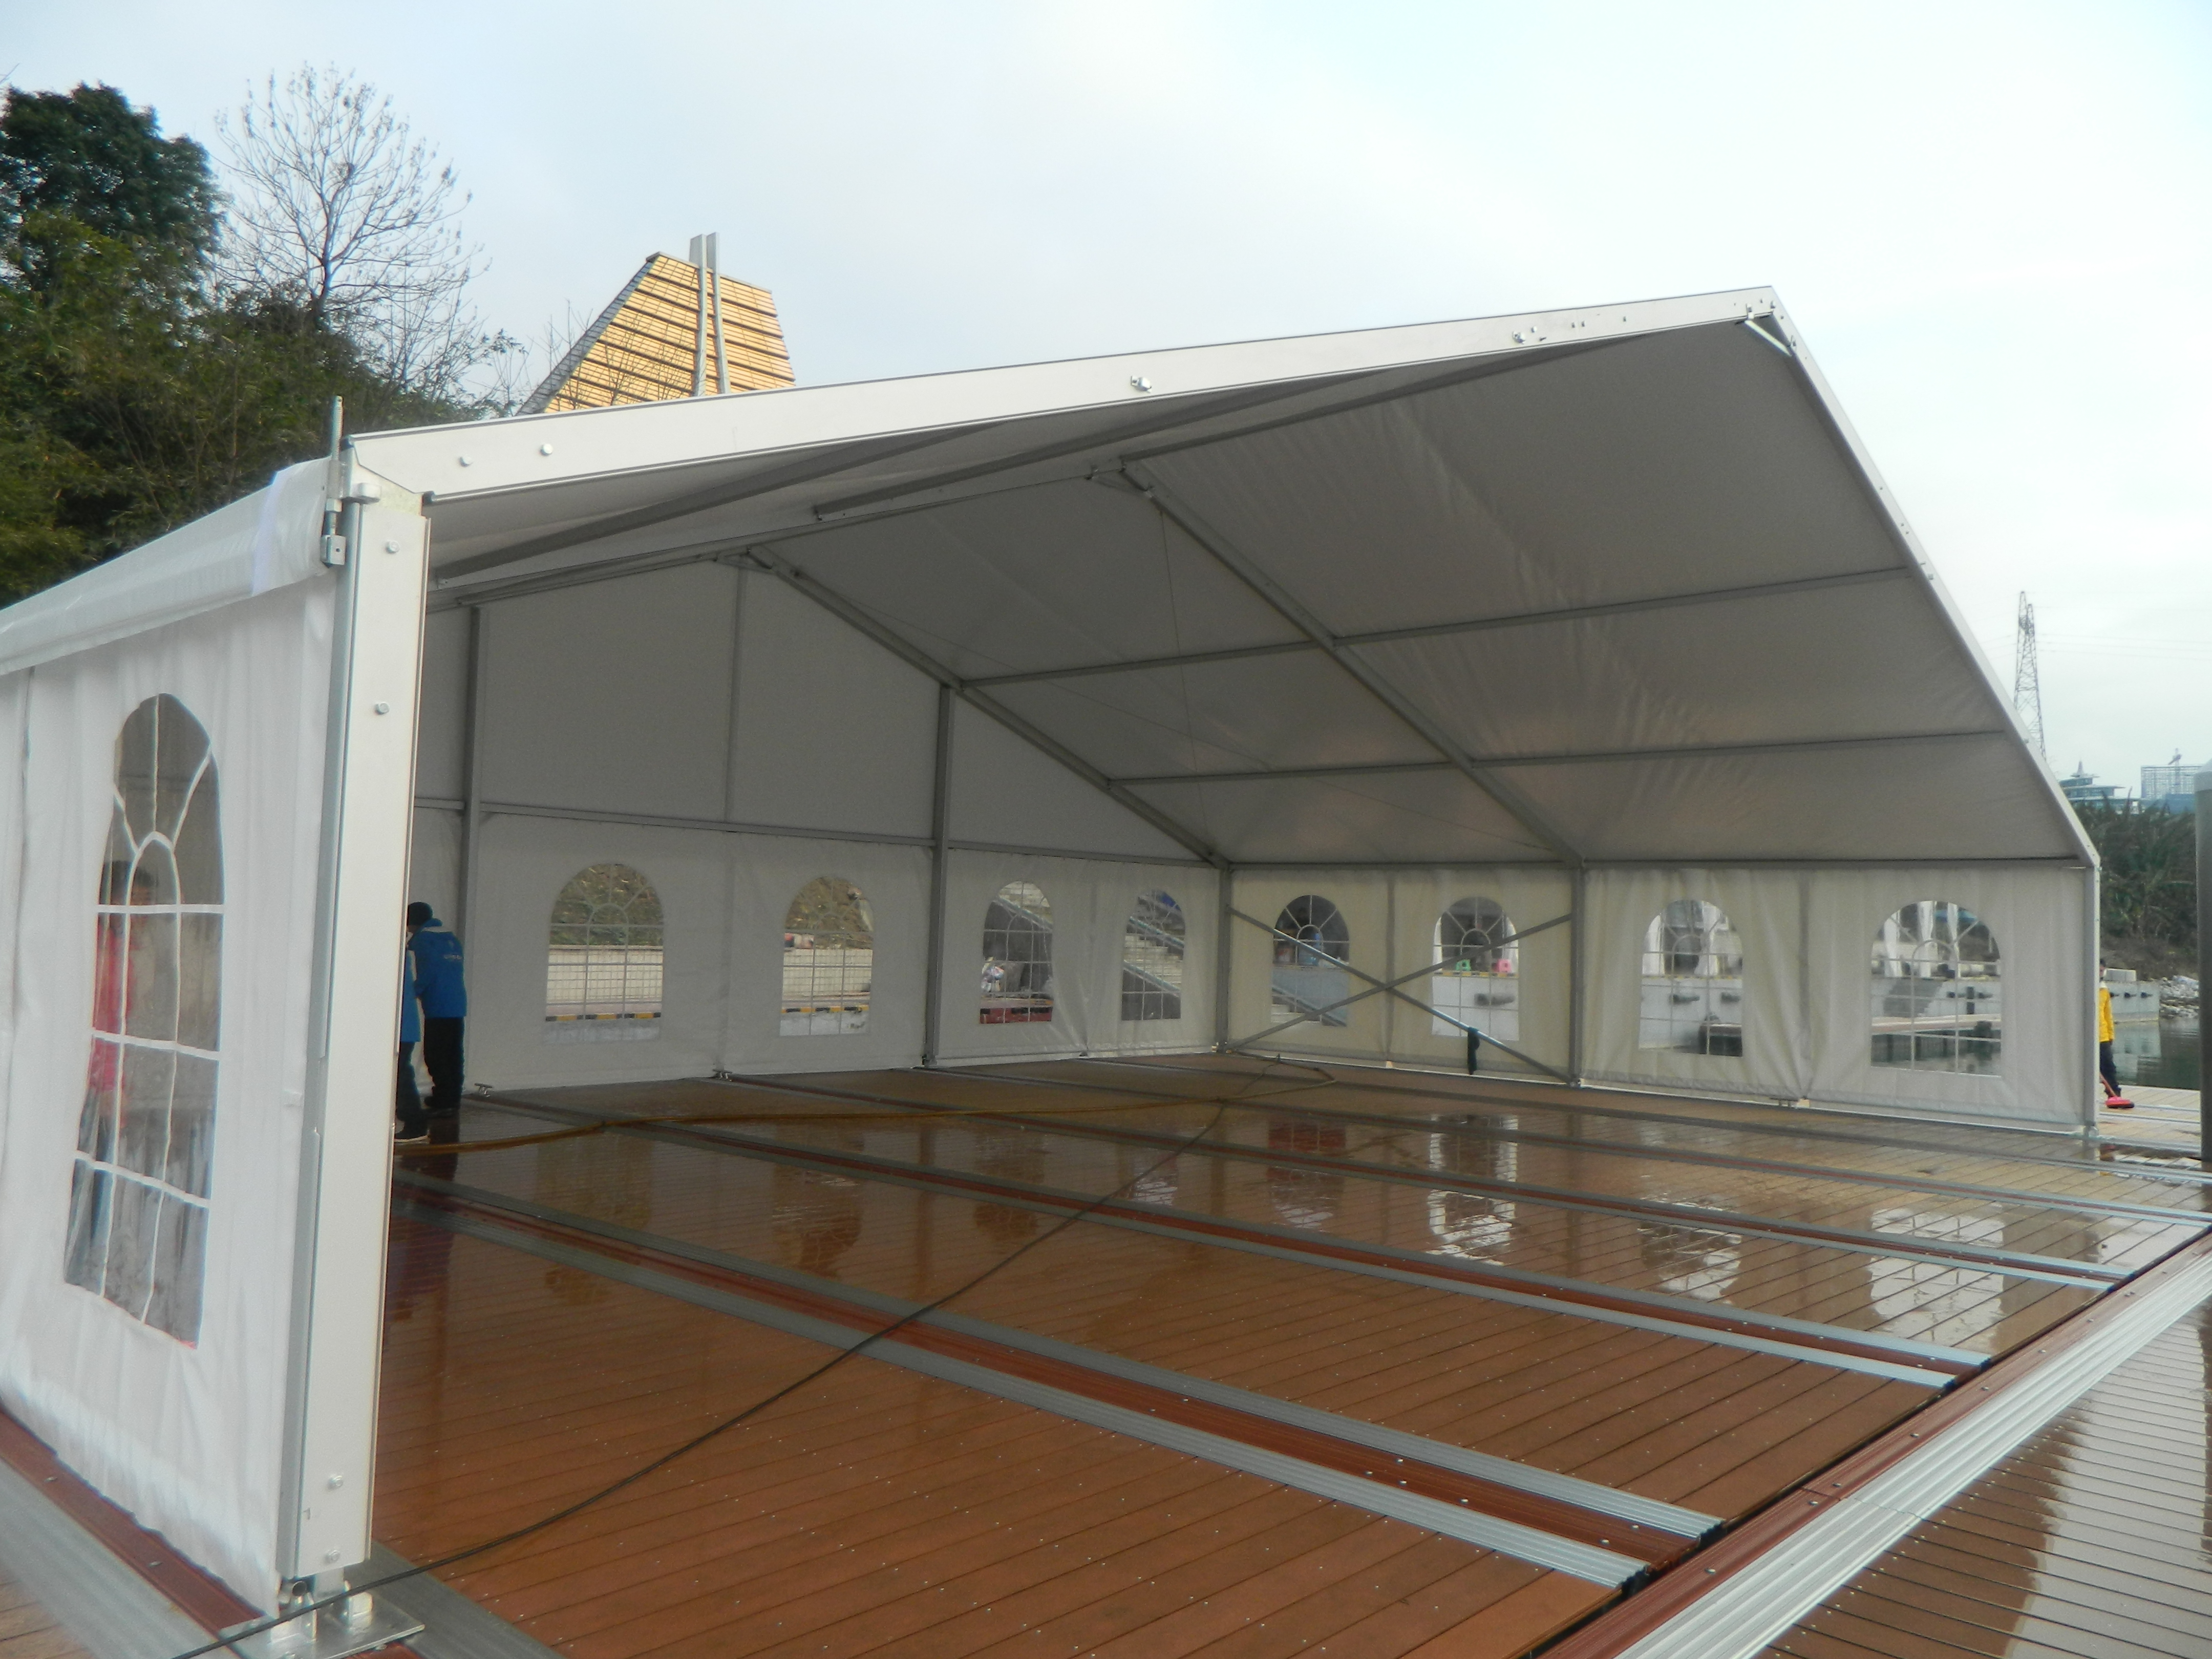 FileSmall Clear Span Tent.JPG & File:Small Clear Span Tent.JPG - Wikimedia Commons